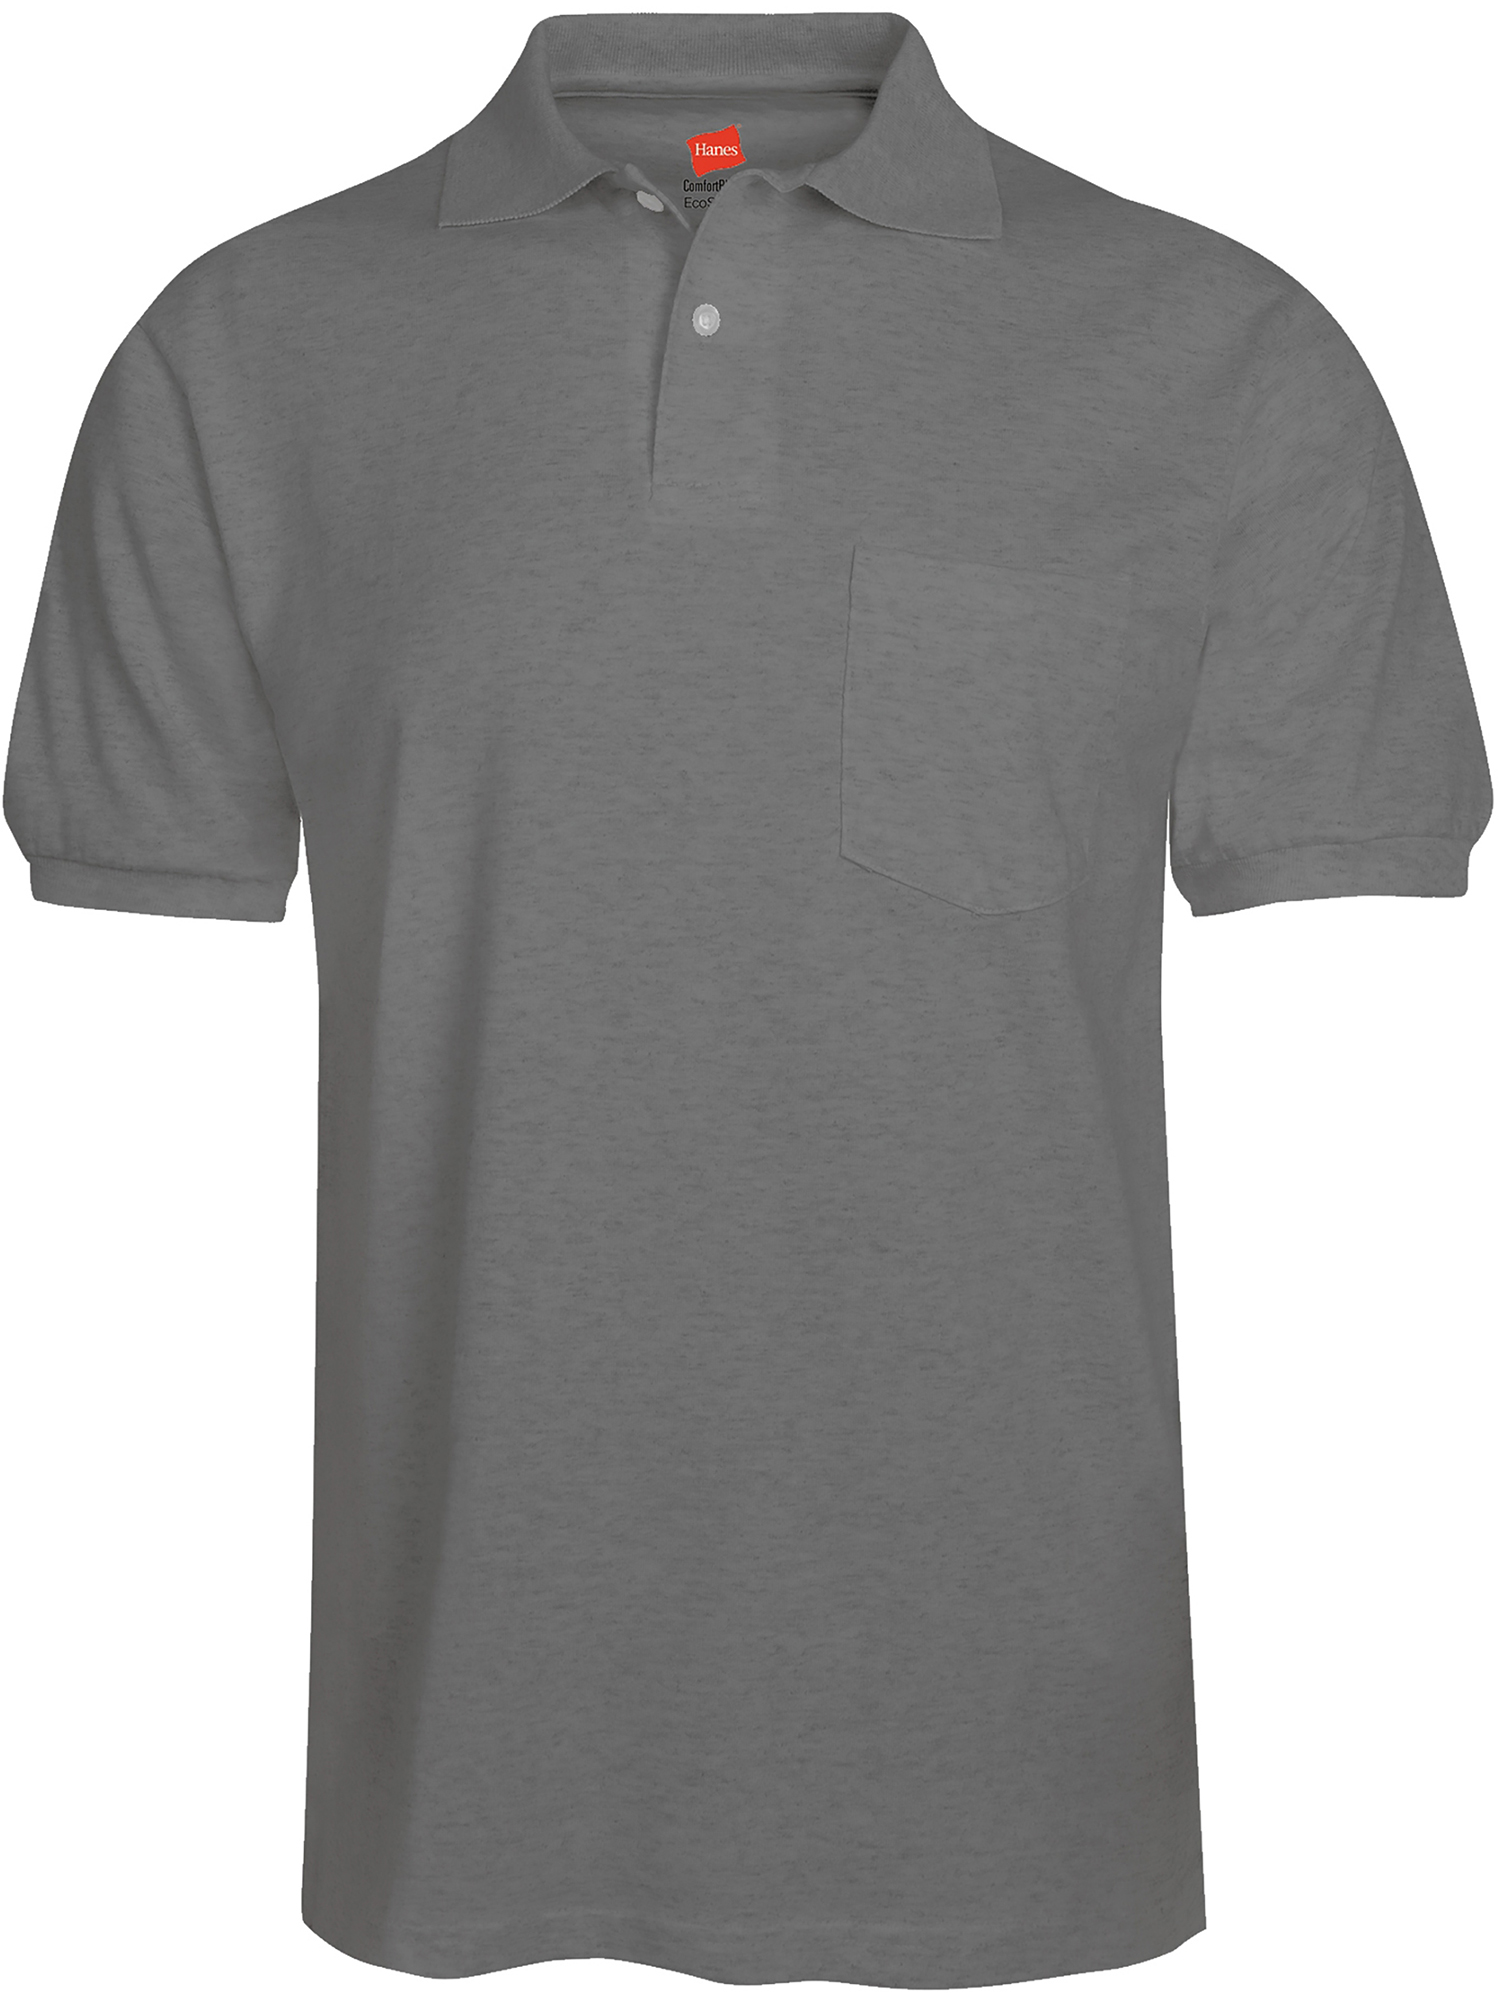 Hanes Mens Comfortblend Ecosmart Jersey Polo With Pocket